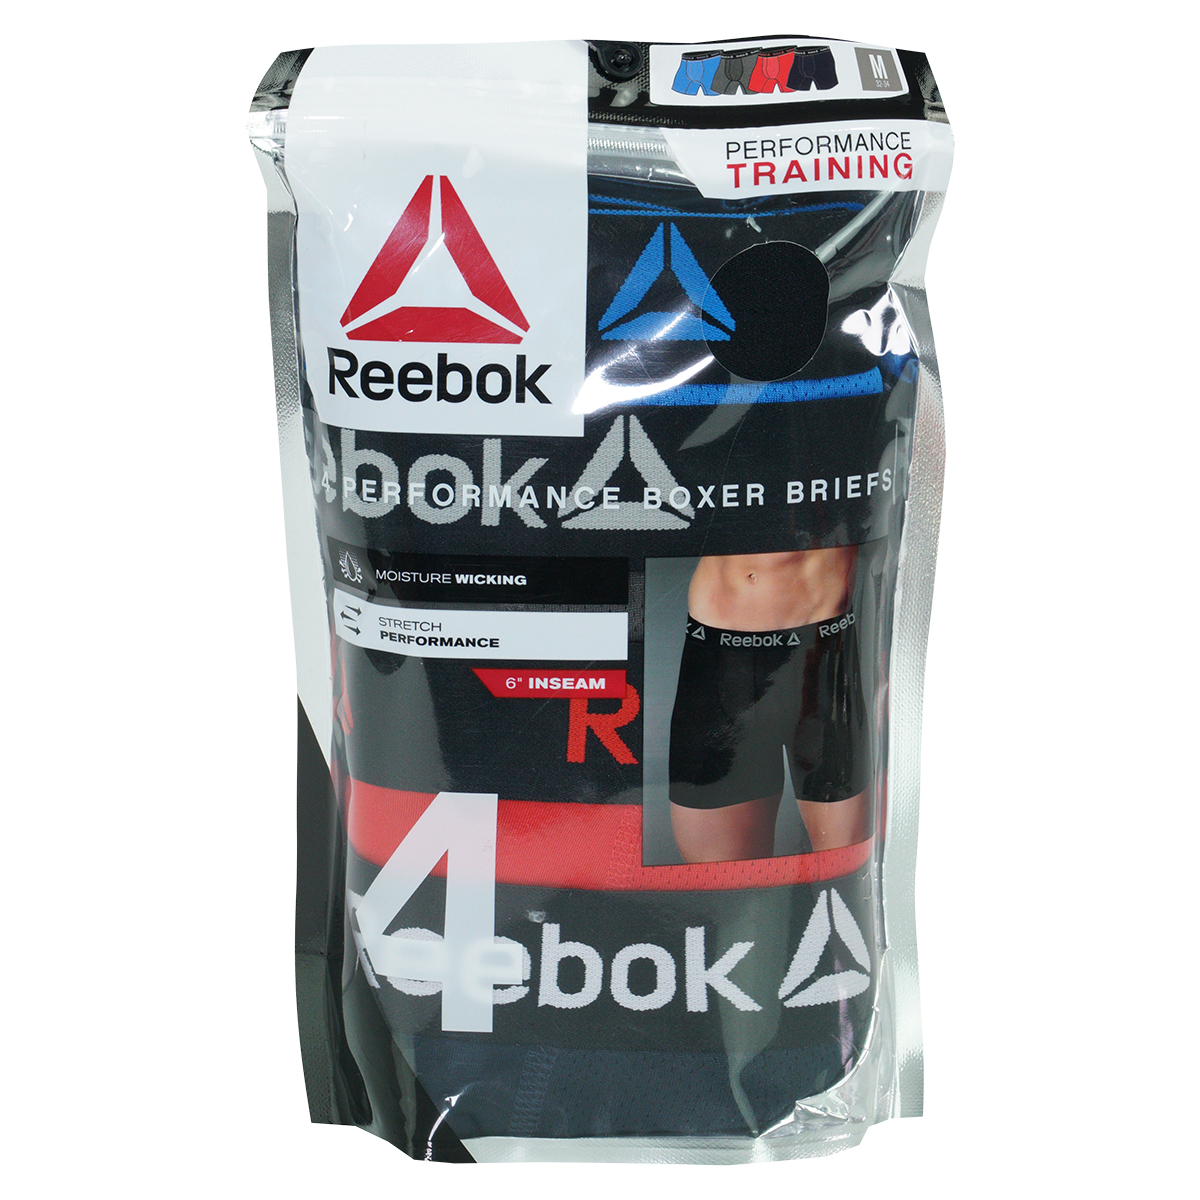 Reebok-Men-039-s-Performance-Boxer-Briefs-4-Pack thumbnail 17